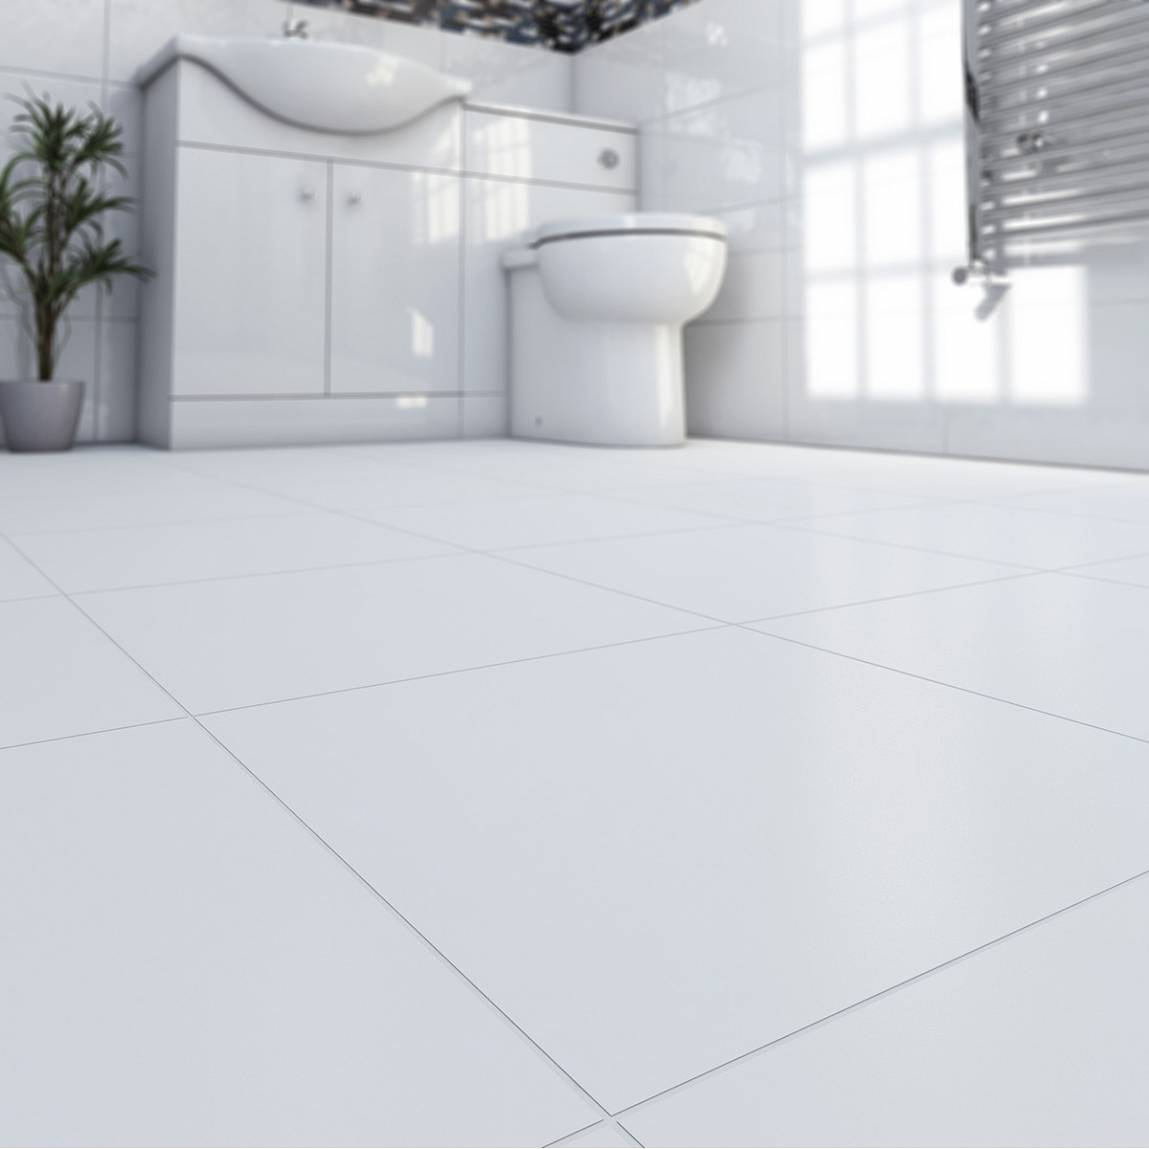 Oria matte super white ceramic floor tile 33cm x 33cm for White ceramic tile bathroom